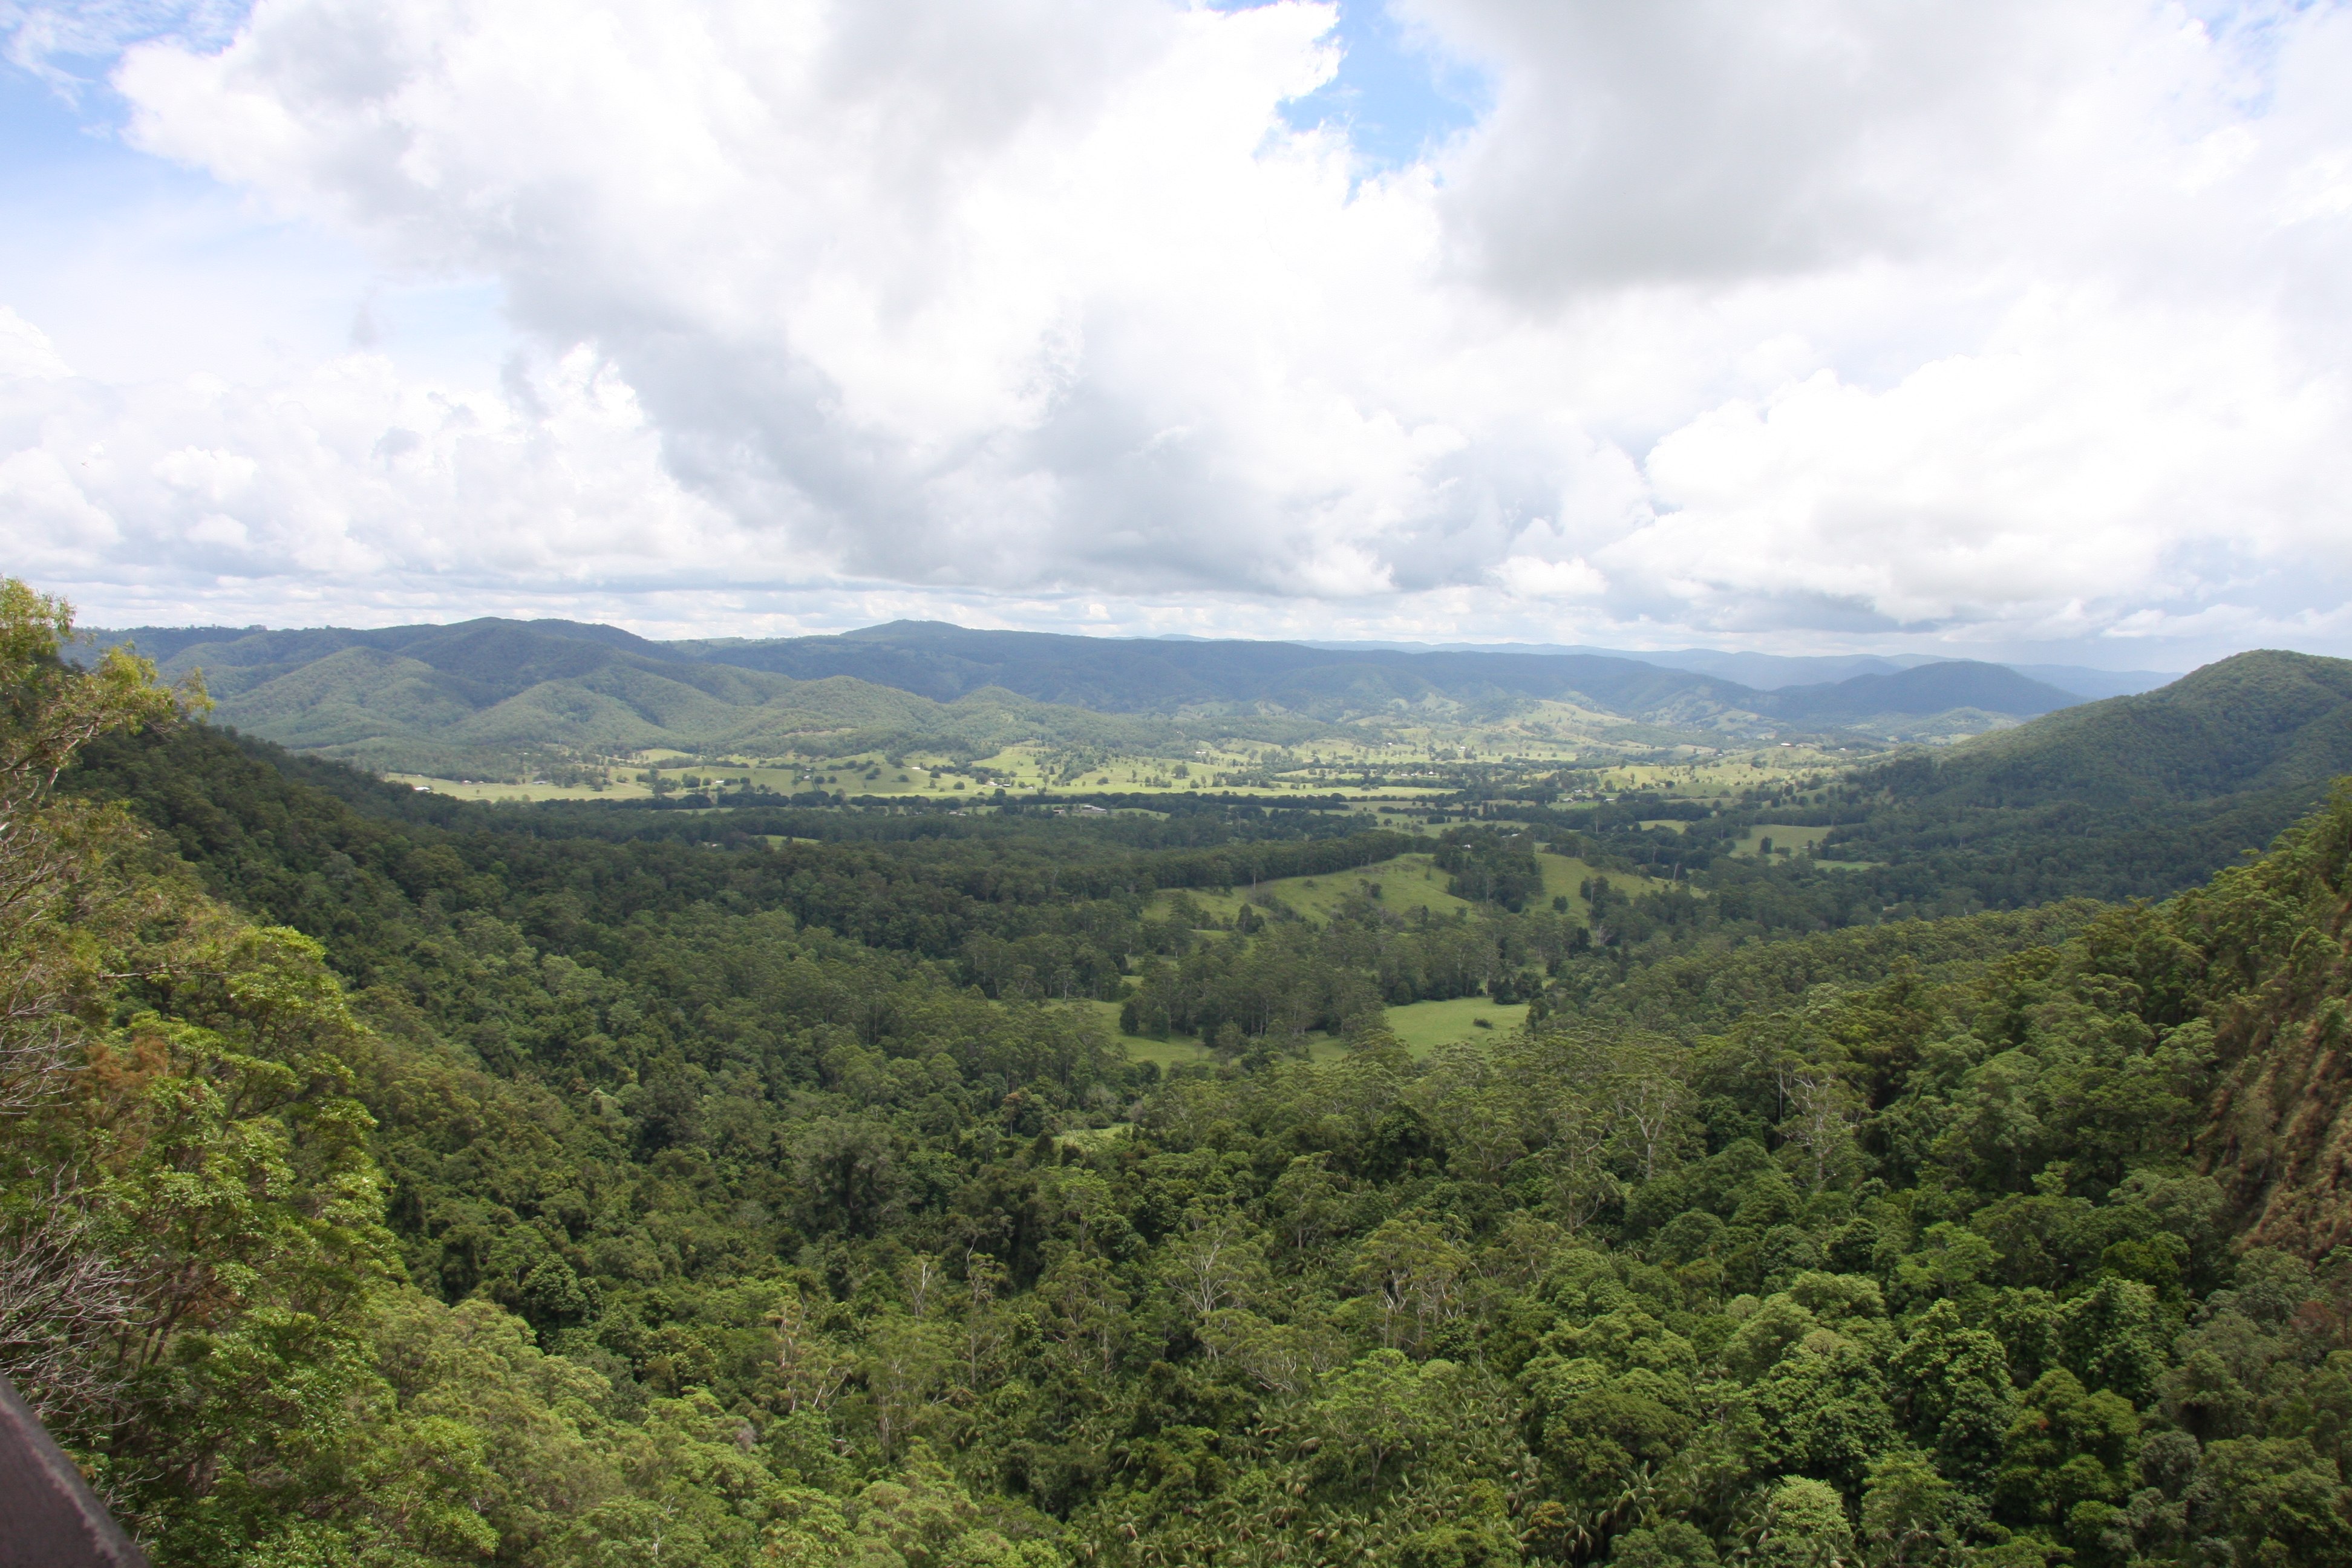 View of Obi Obi from Mapleton Falls Lookout